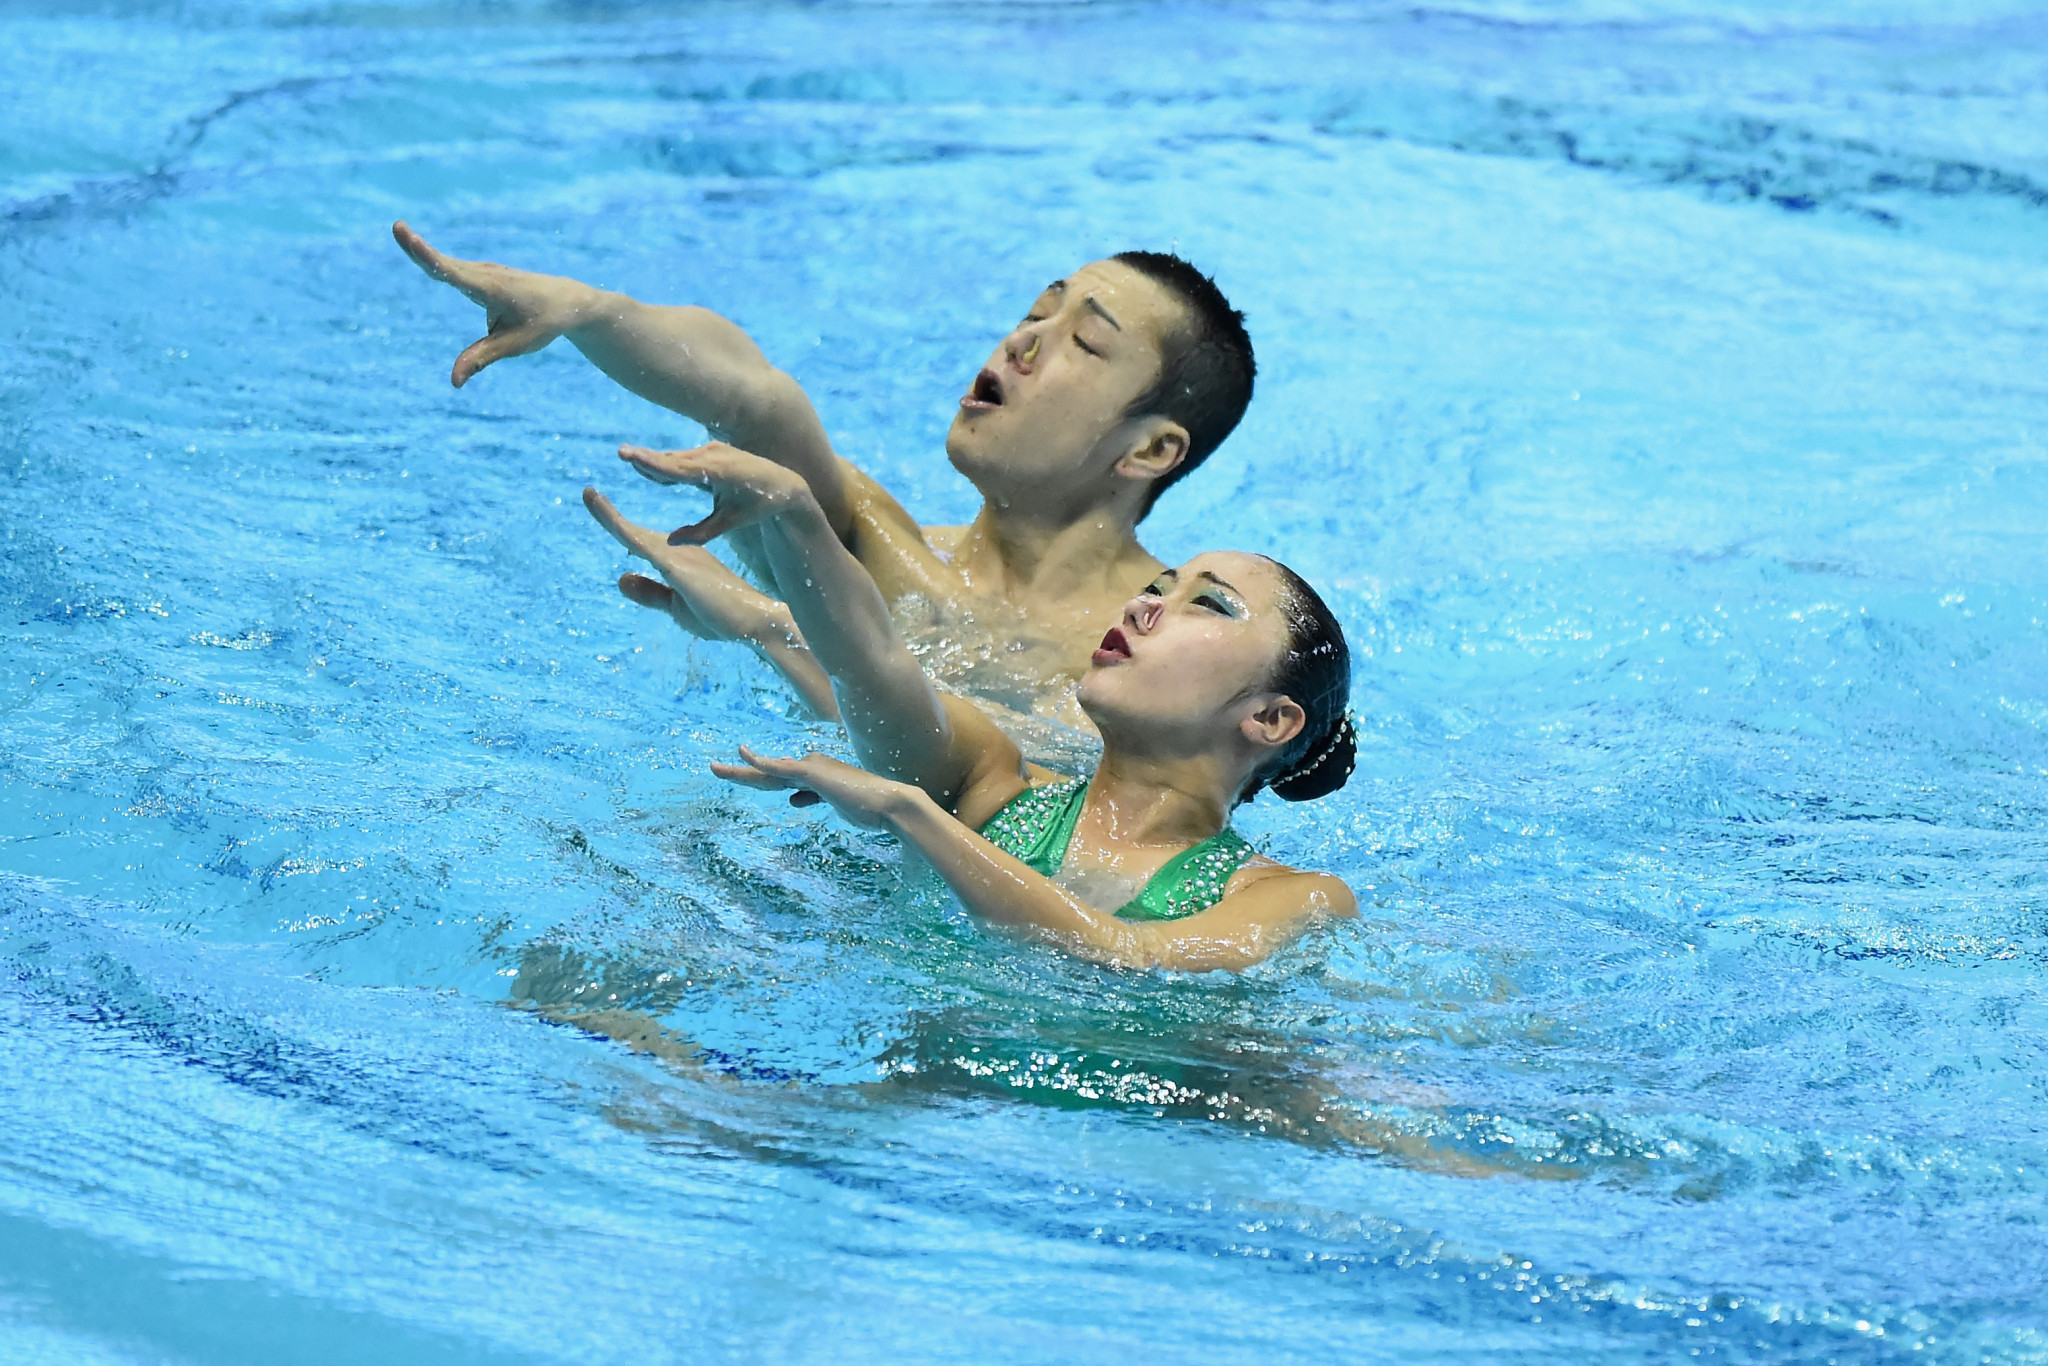 Japan and Italy earn mixed duet titles at FINA Artistic Swimming World Series in Alexandroupolis